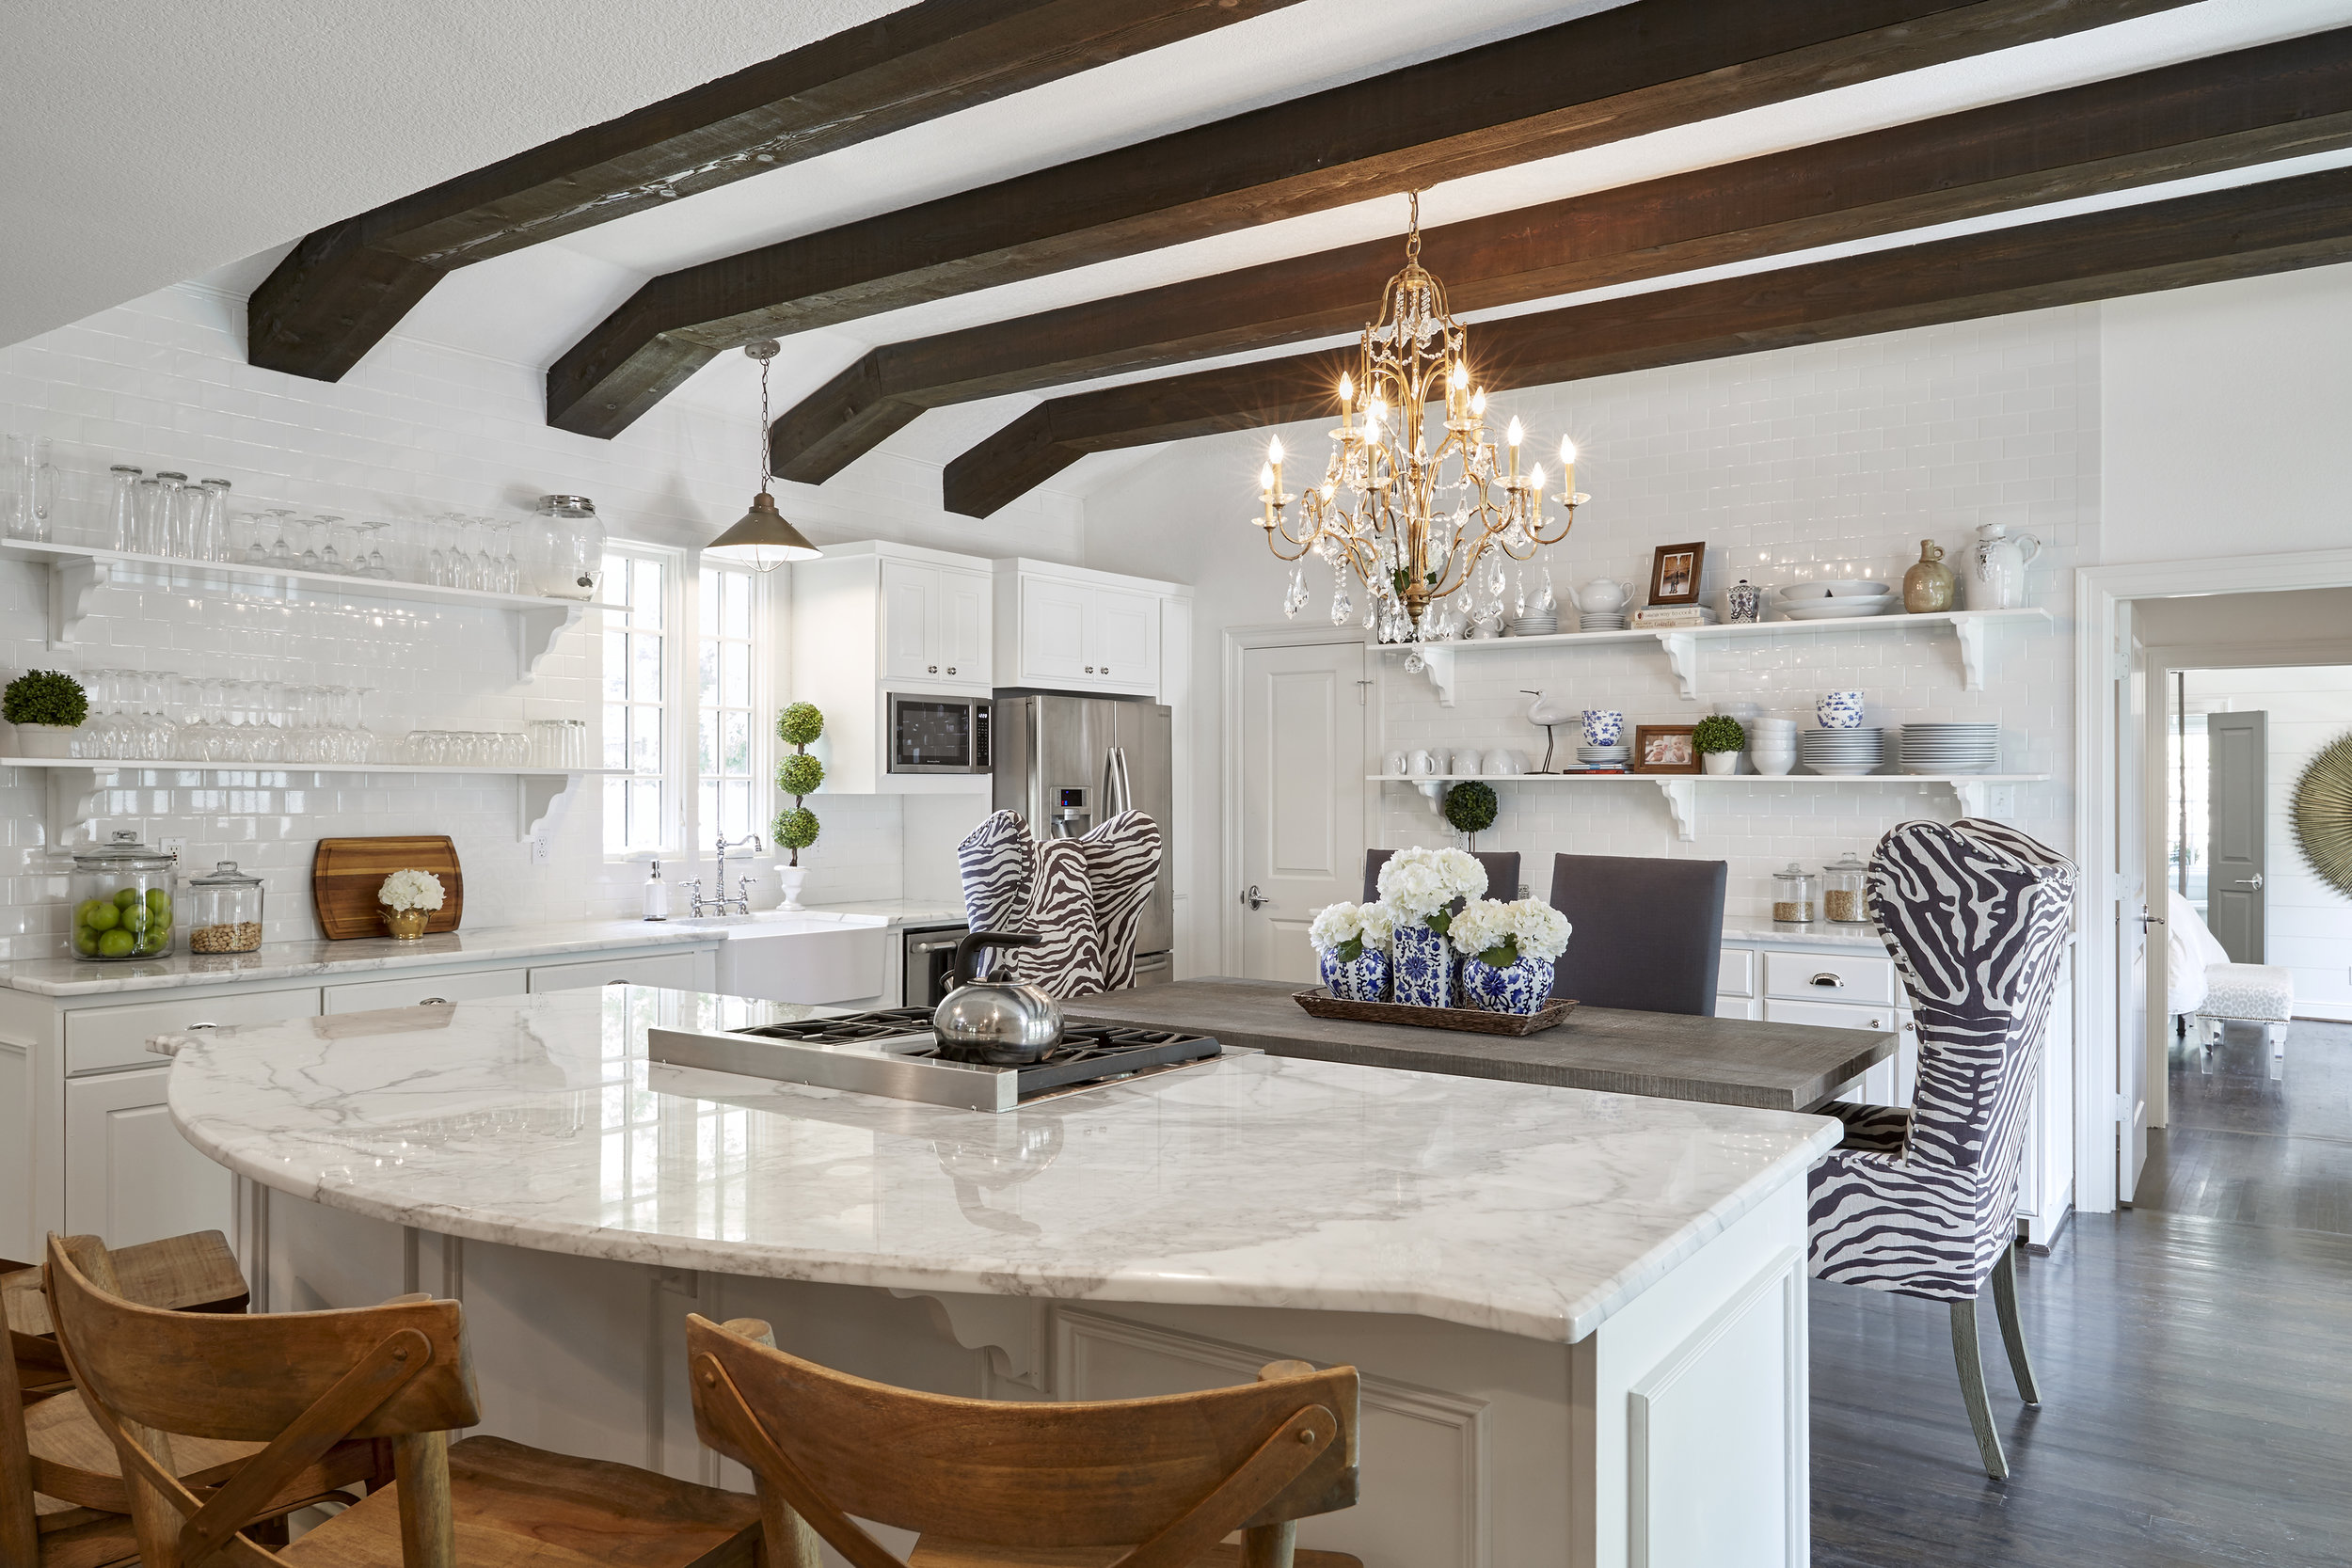 Dark ceiling beams  and wood floors add texture and visual interest to the stark white kitchen.